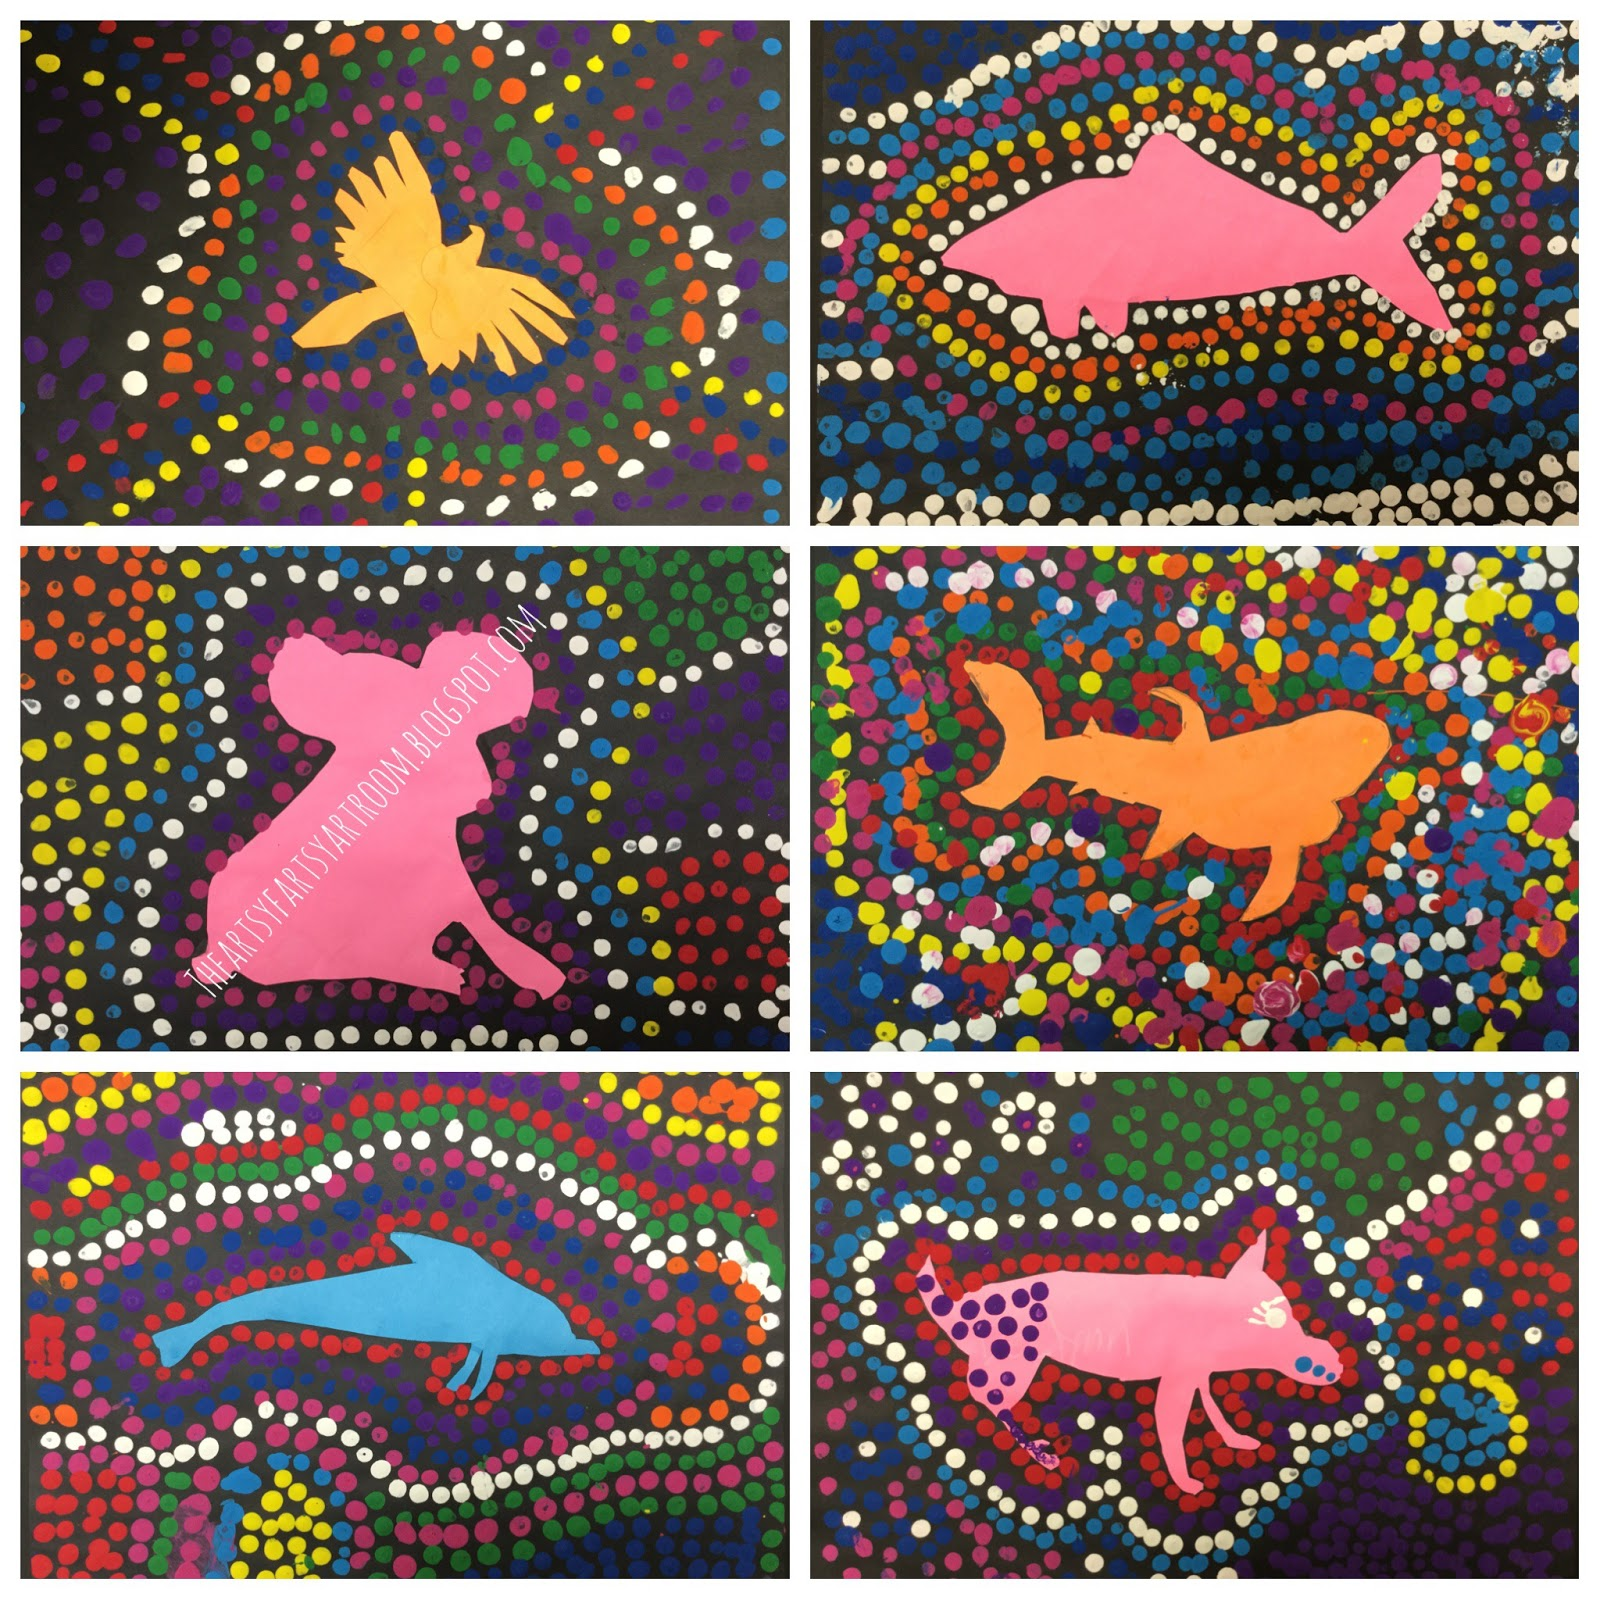 The Artsy Fartsy Art Room Australian Aboriginal Dot Art